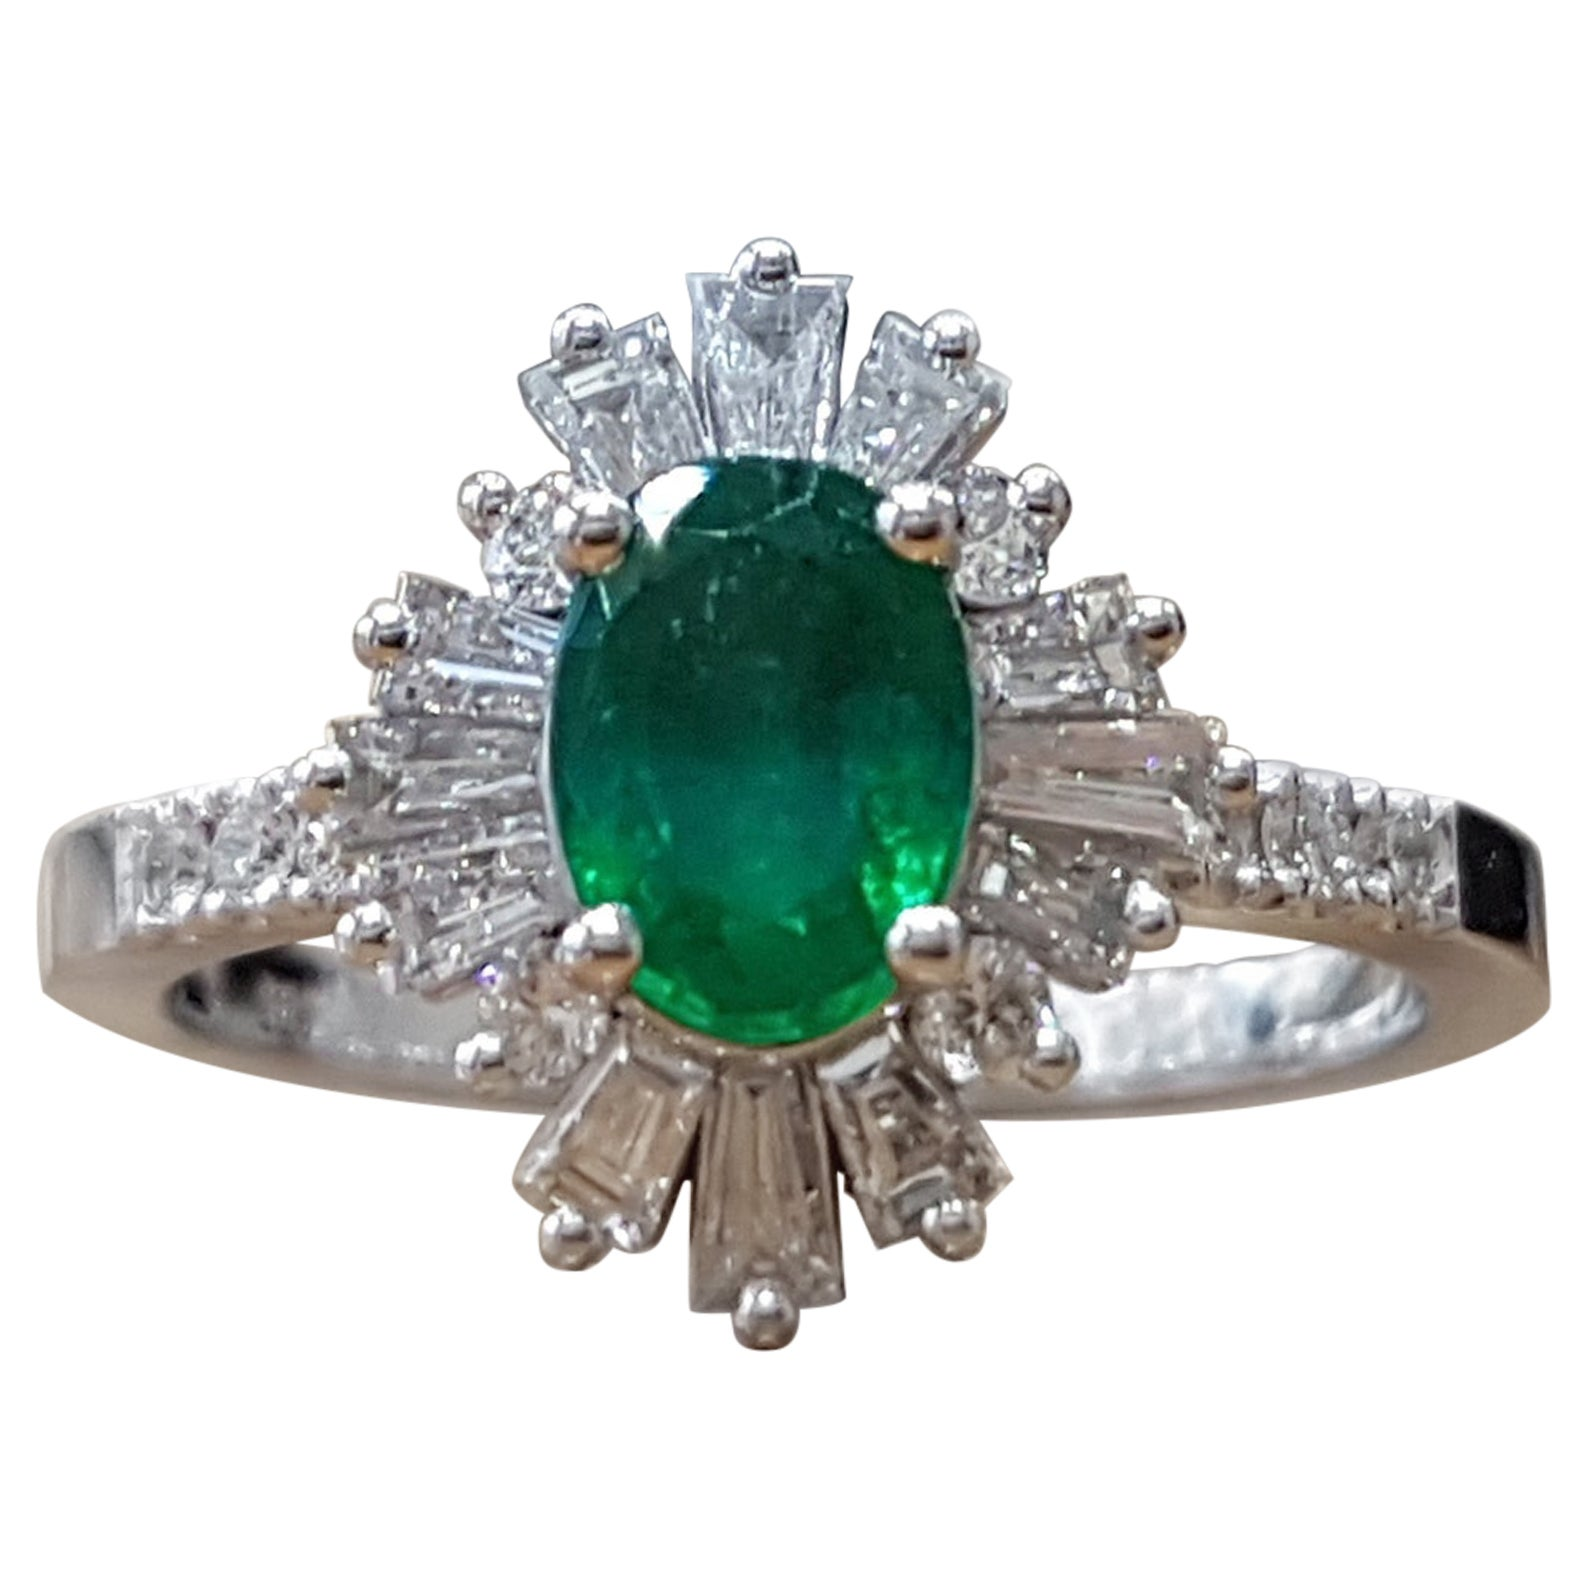 1.4 Carat 14 Karat Gold Oval Cut Green Emerald Gatsby Style Engagement Ring